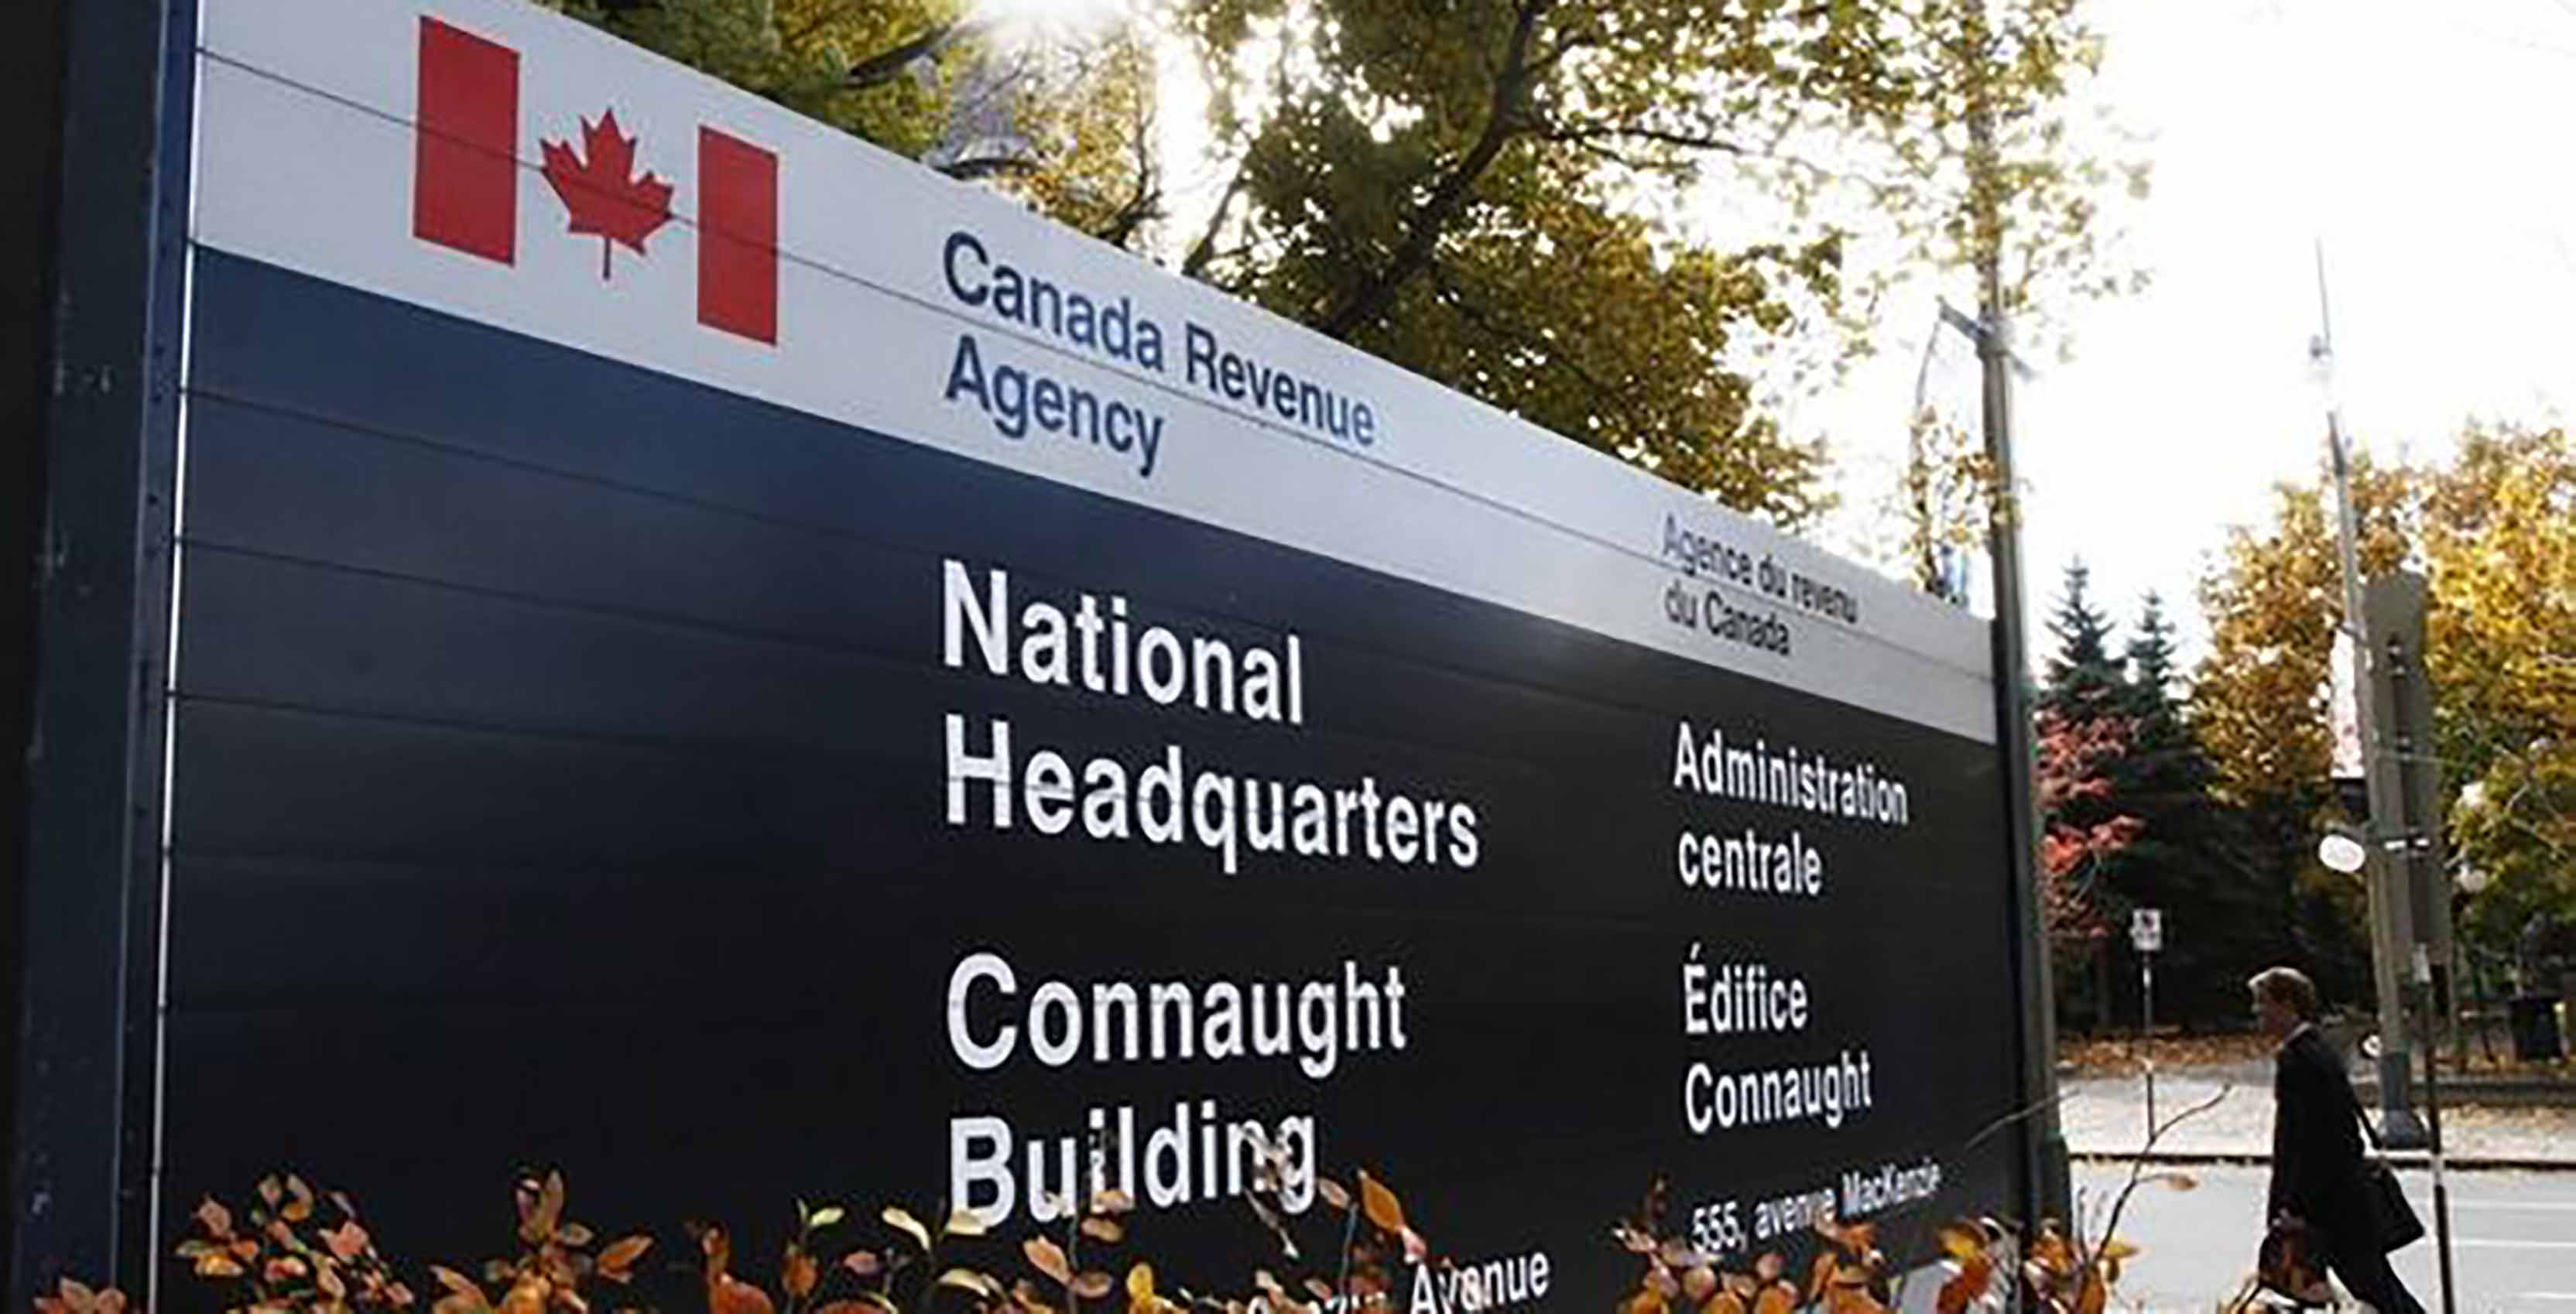 Canada Revenue Agency HQ